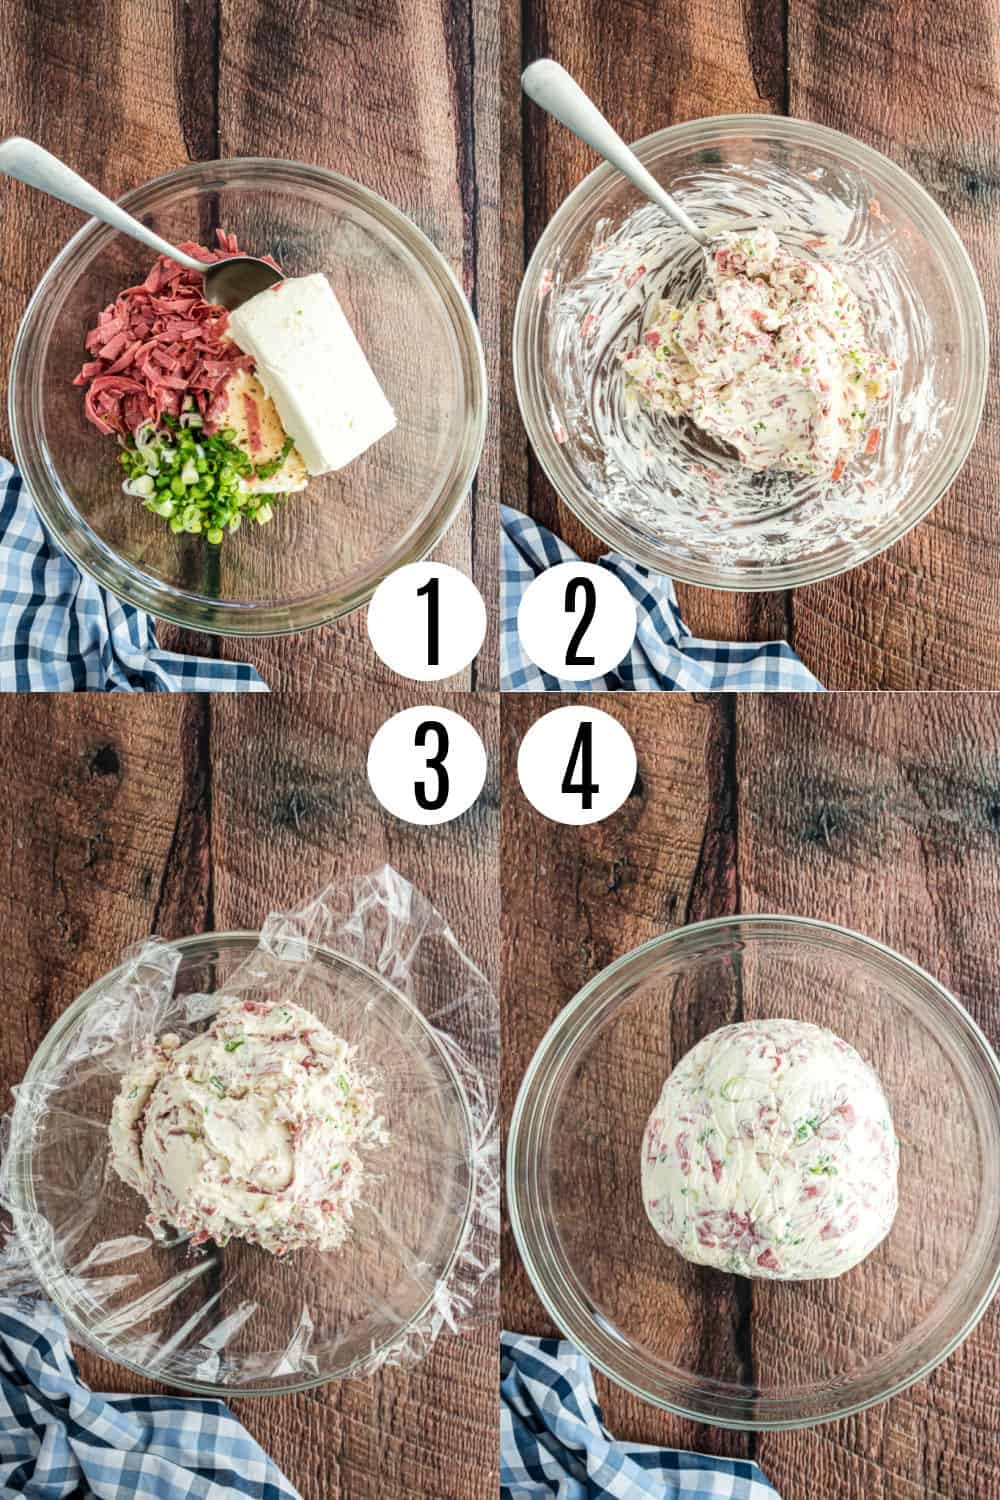 Step by step photos showing how to make a cheese ball.